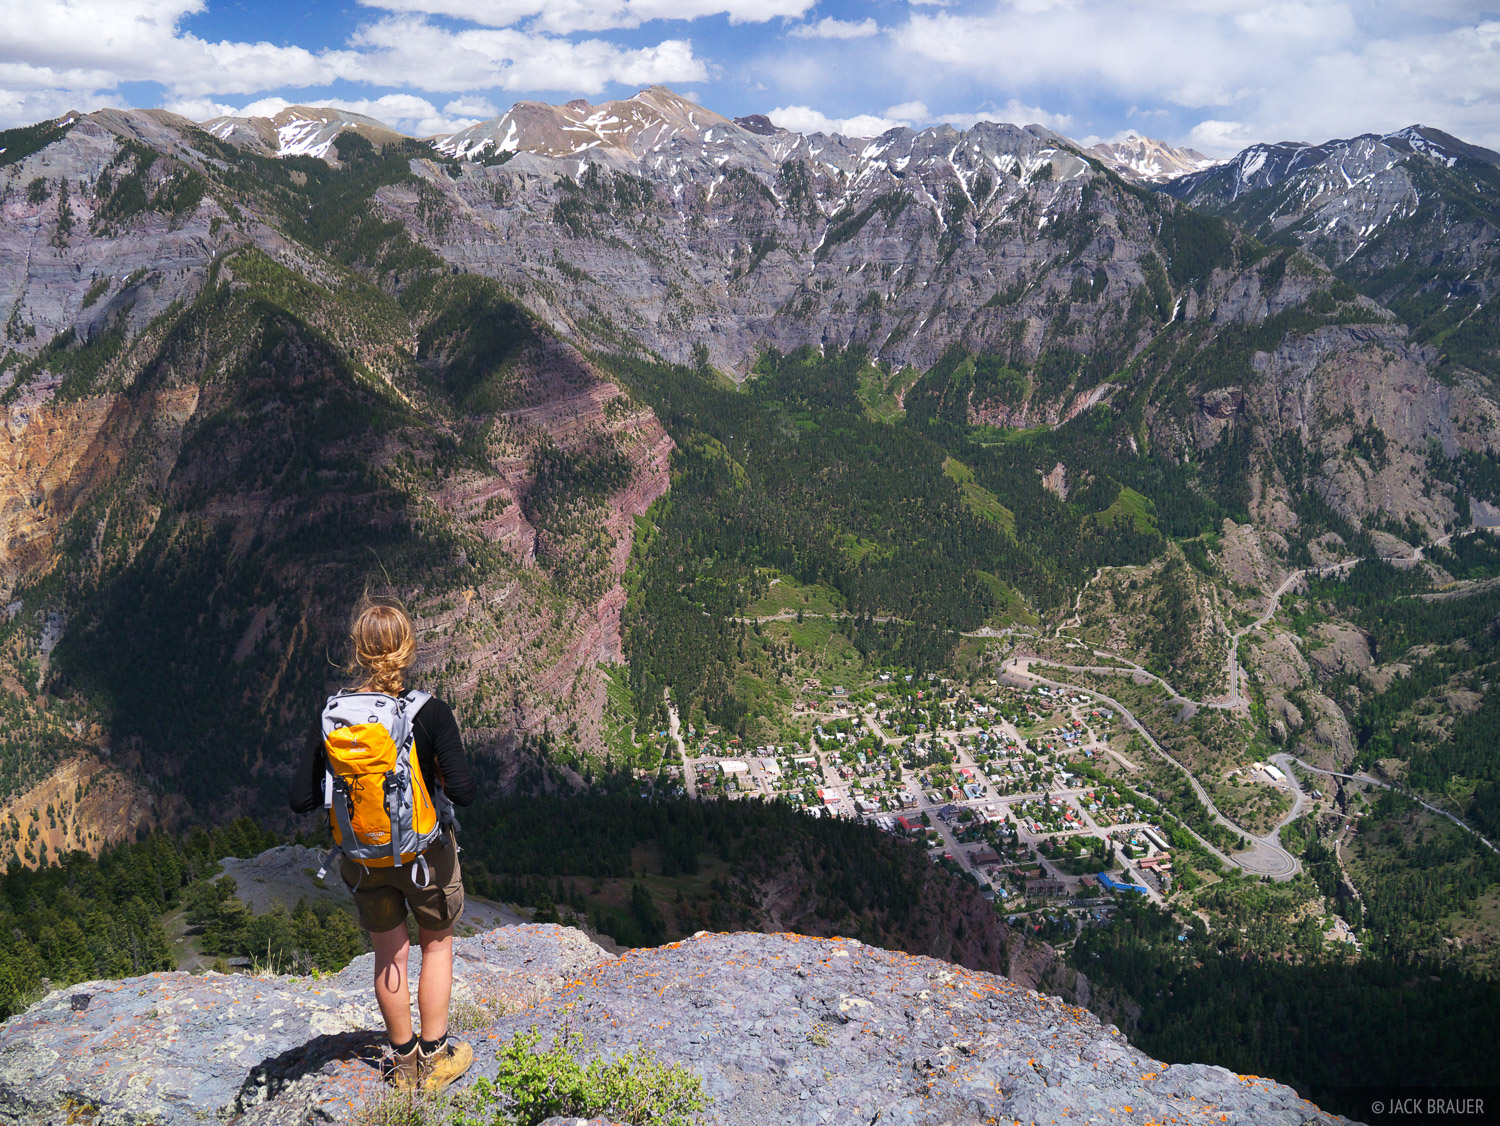 Colorado,Ouray,San Juan Mountains, Twin Peaks, hiker, hiking, photo